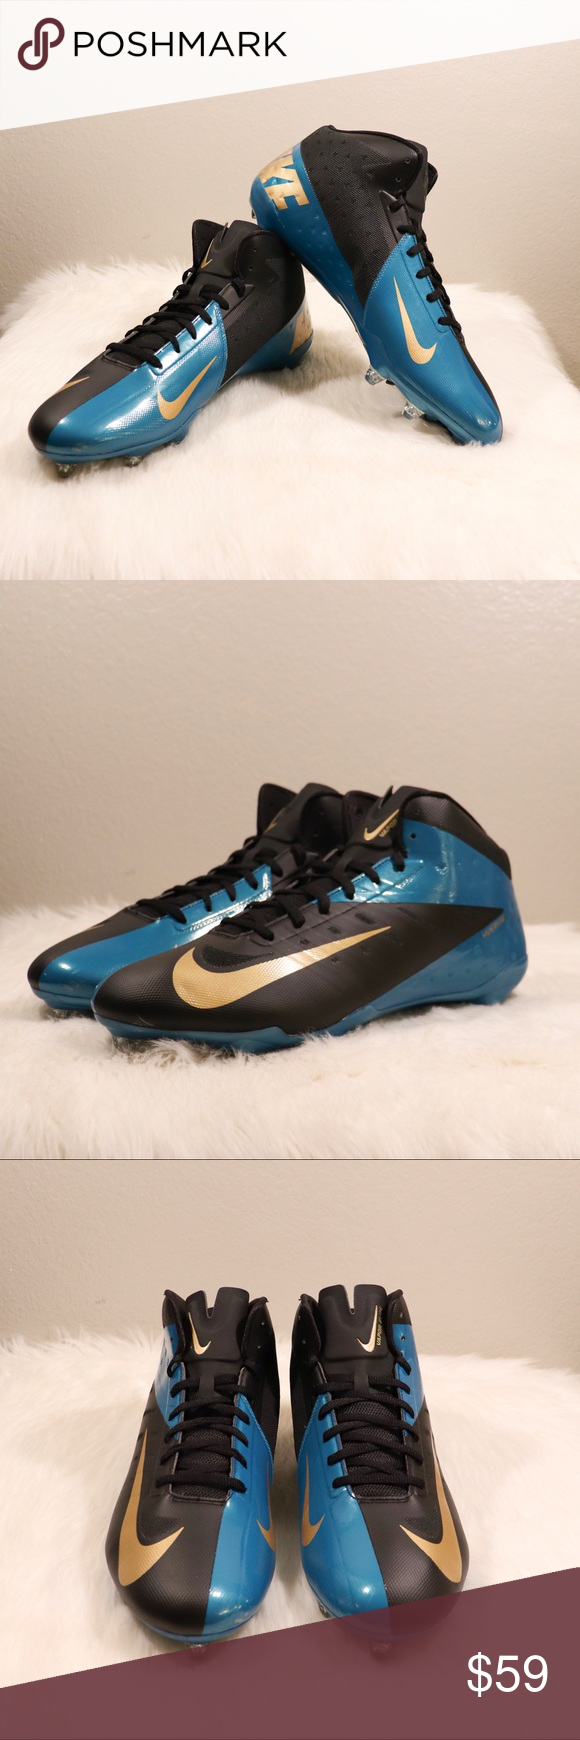 88508168d6d1 Nike Football Cleats - Jacksonville Jaguars Nike Vapor Elite Hyperfuse Football  Cleat Shoe Jacksonville Jaguars Size: 15 - Men's Color: Black /Teal/ Gold  ...